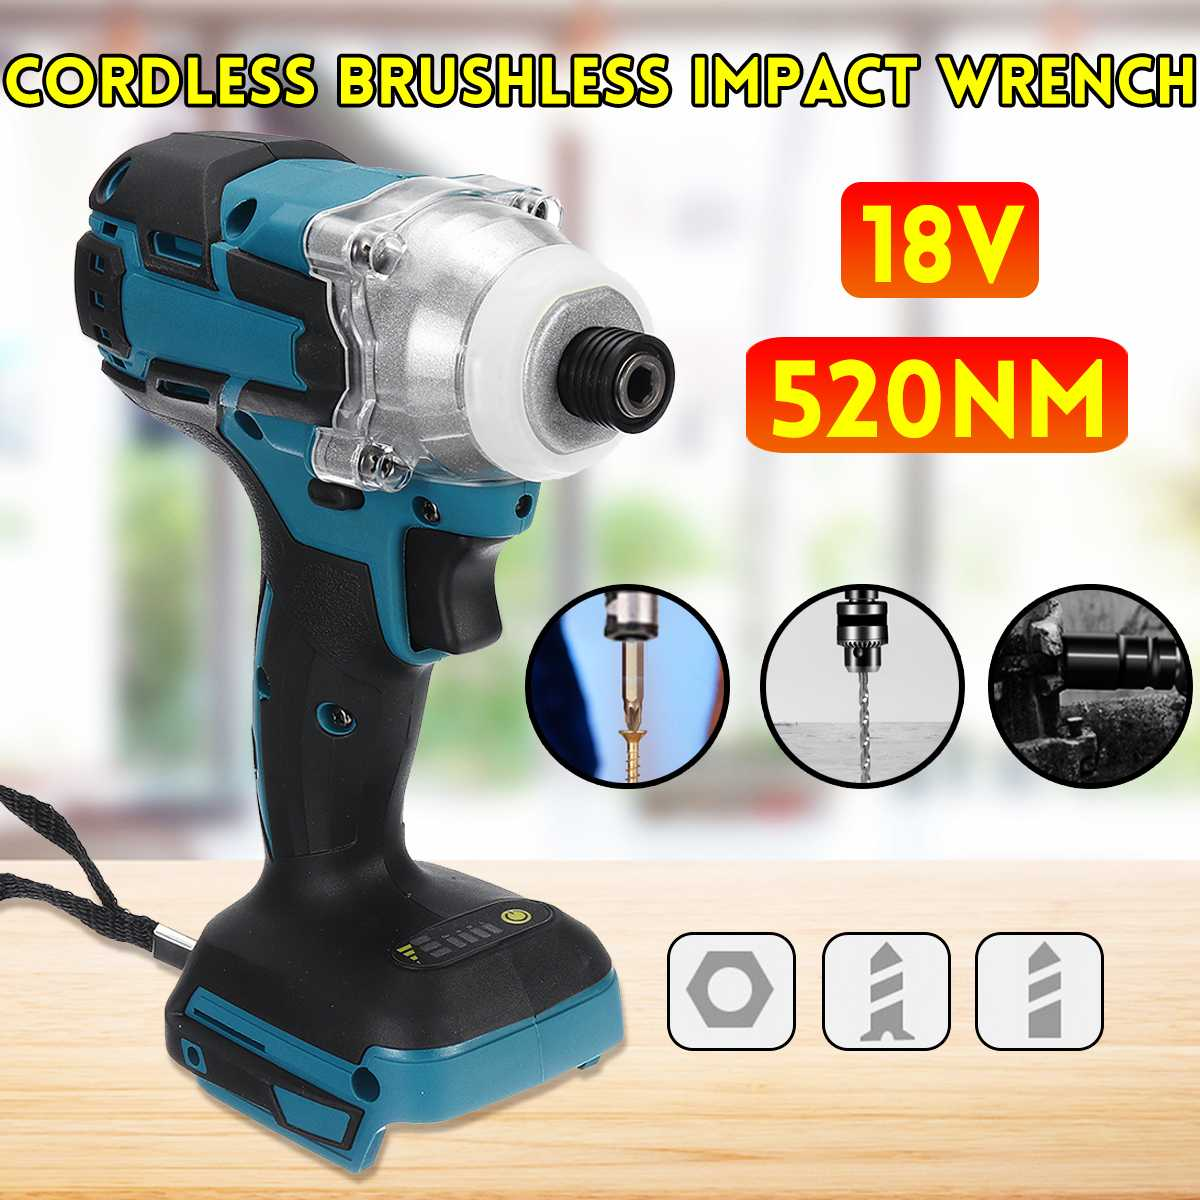 18V 520N.m Electric Brushless Impact Wrench Rechargeable 1/2'' Socket Cordless Wrench Screwdriver For Makita Battery